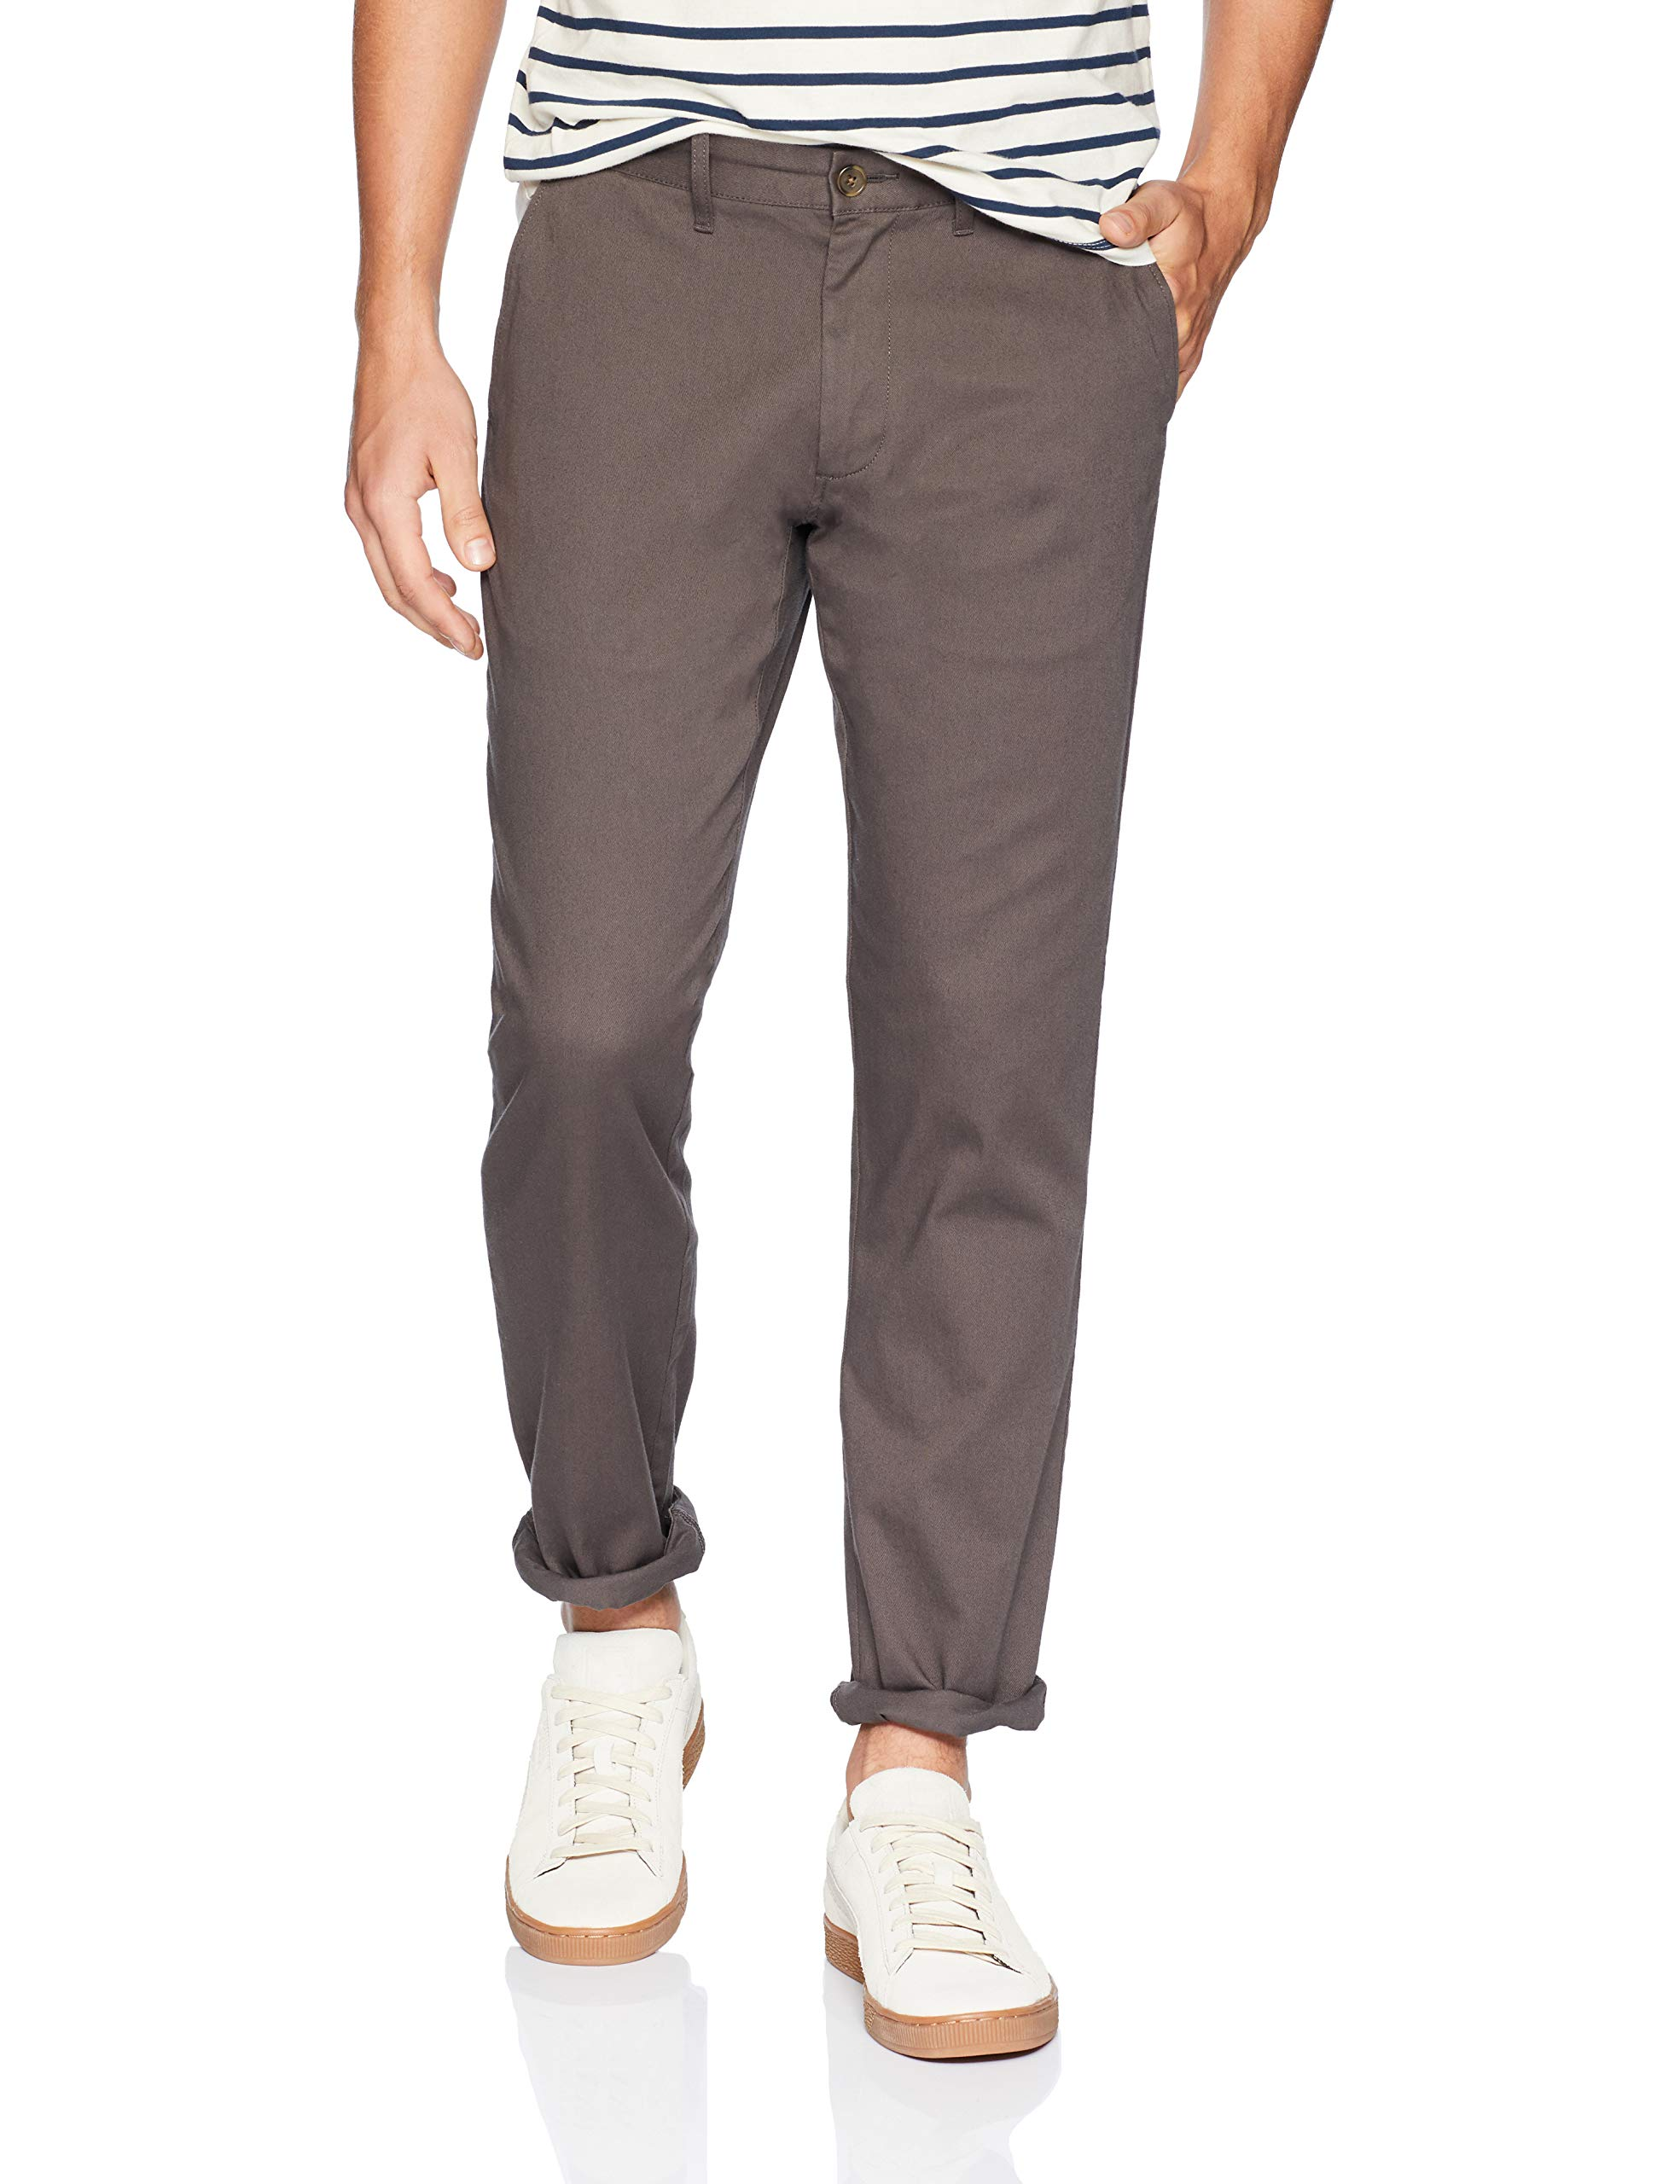 Men's Straight Fit Stretch Chino 4